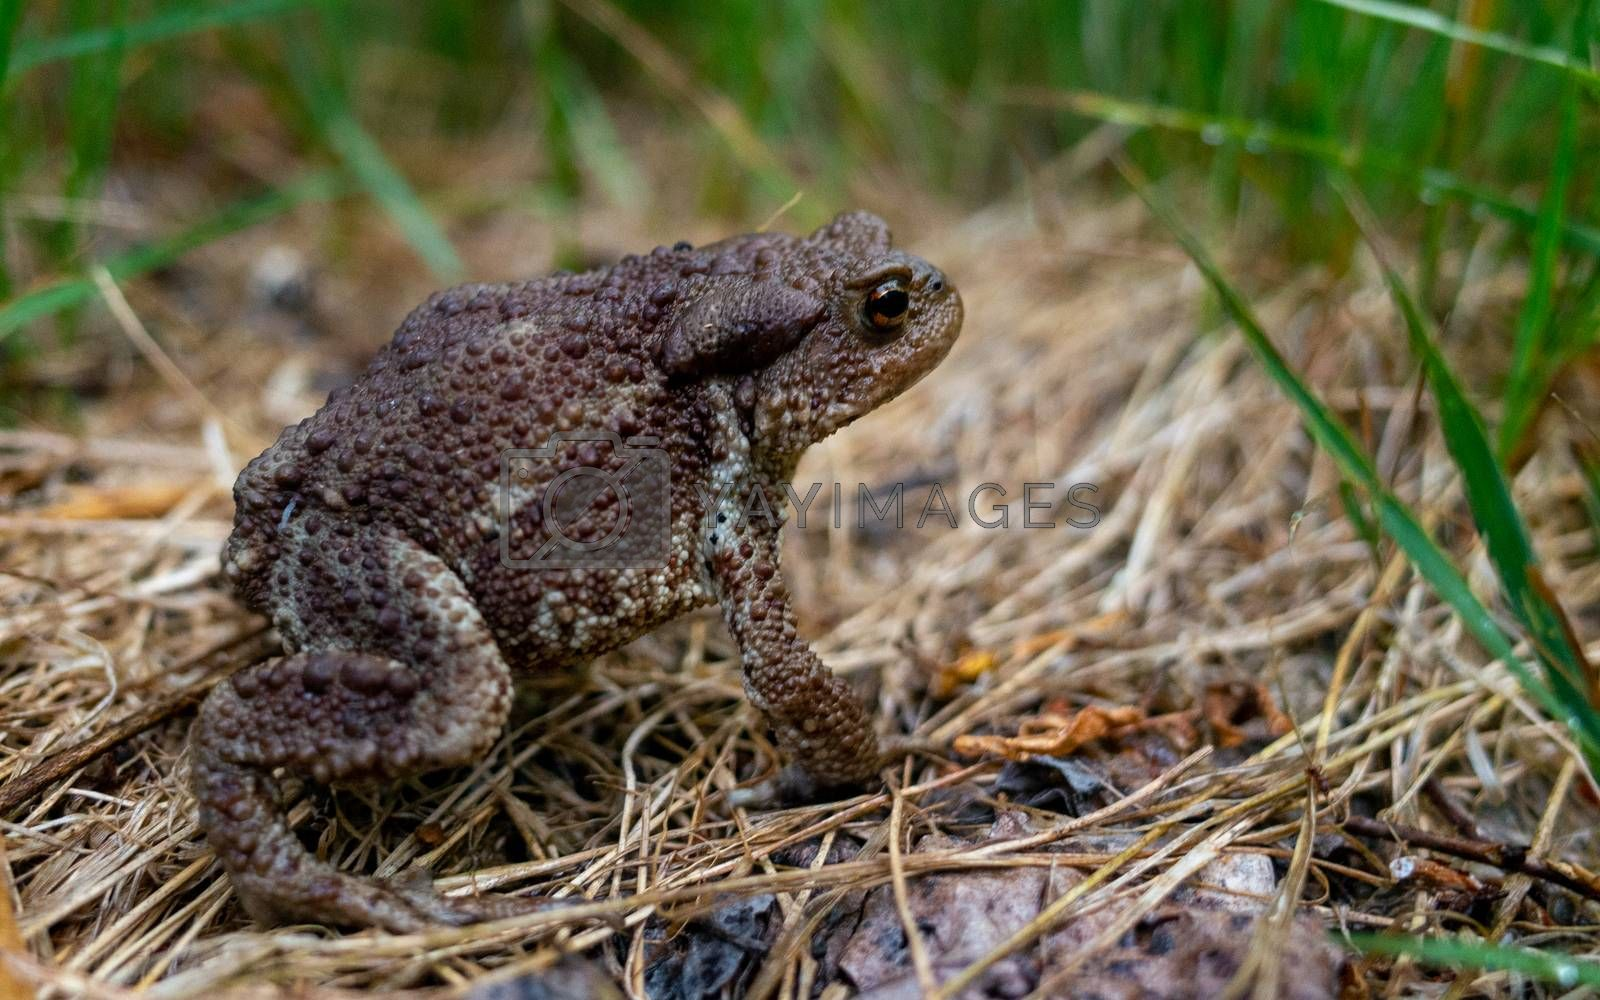 Common or grey toad (Bufo bufo) on a dried grass Mat in a summer forest.